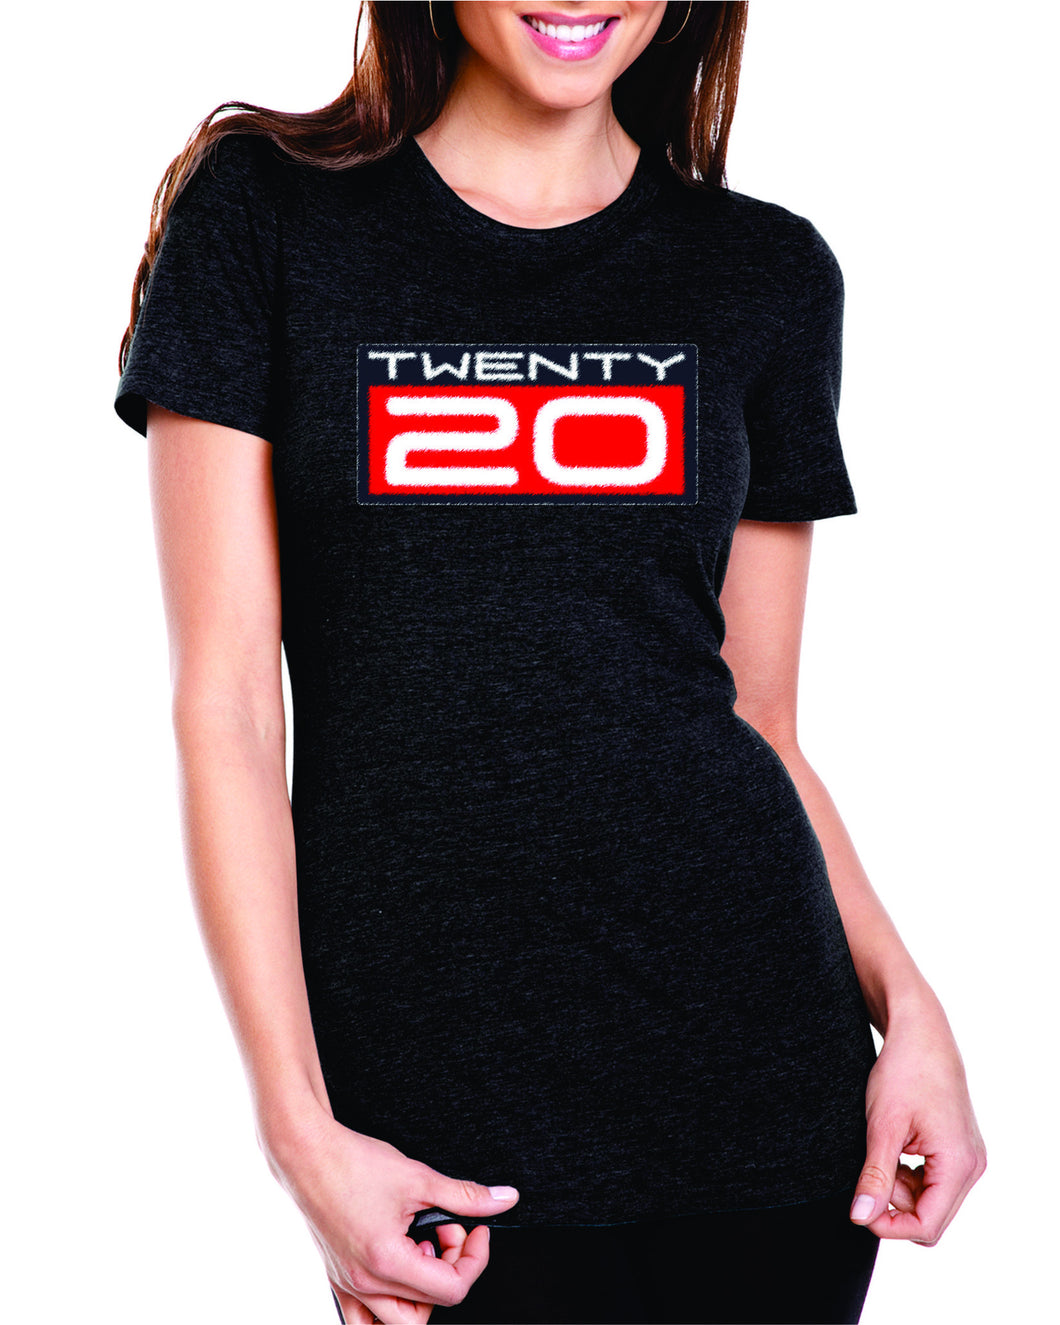 TWENTY20 womens spray paint tshirt benefiting Sho-Air TWENTY20 Ridebiker Junior Development Team